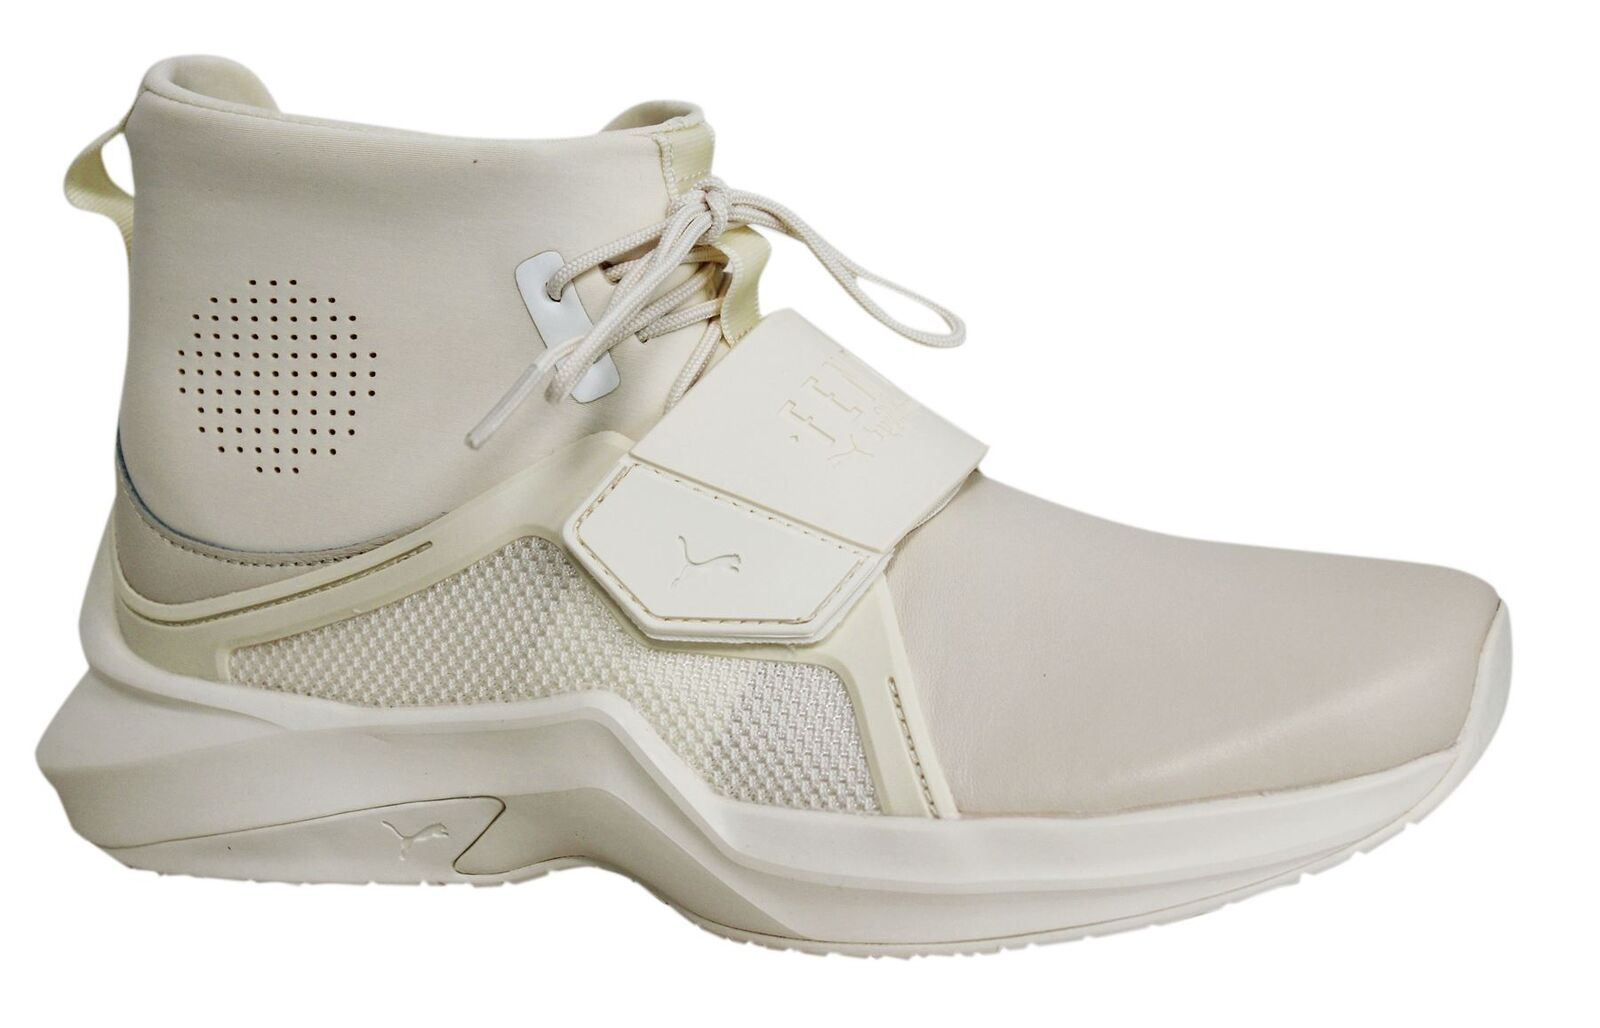 Puma Fenty By Rihanna Off White Leather Textile Womens The Trainer 190398 04 M1